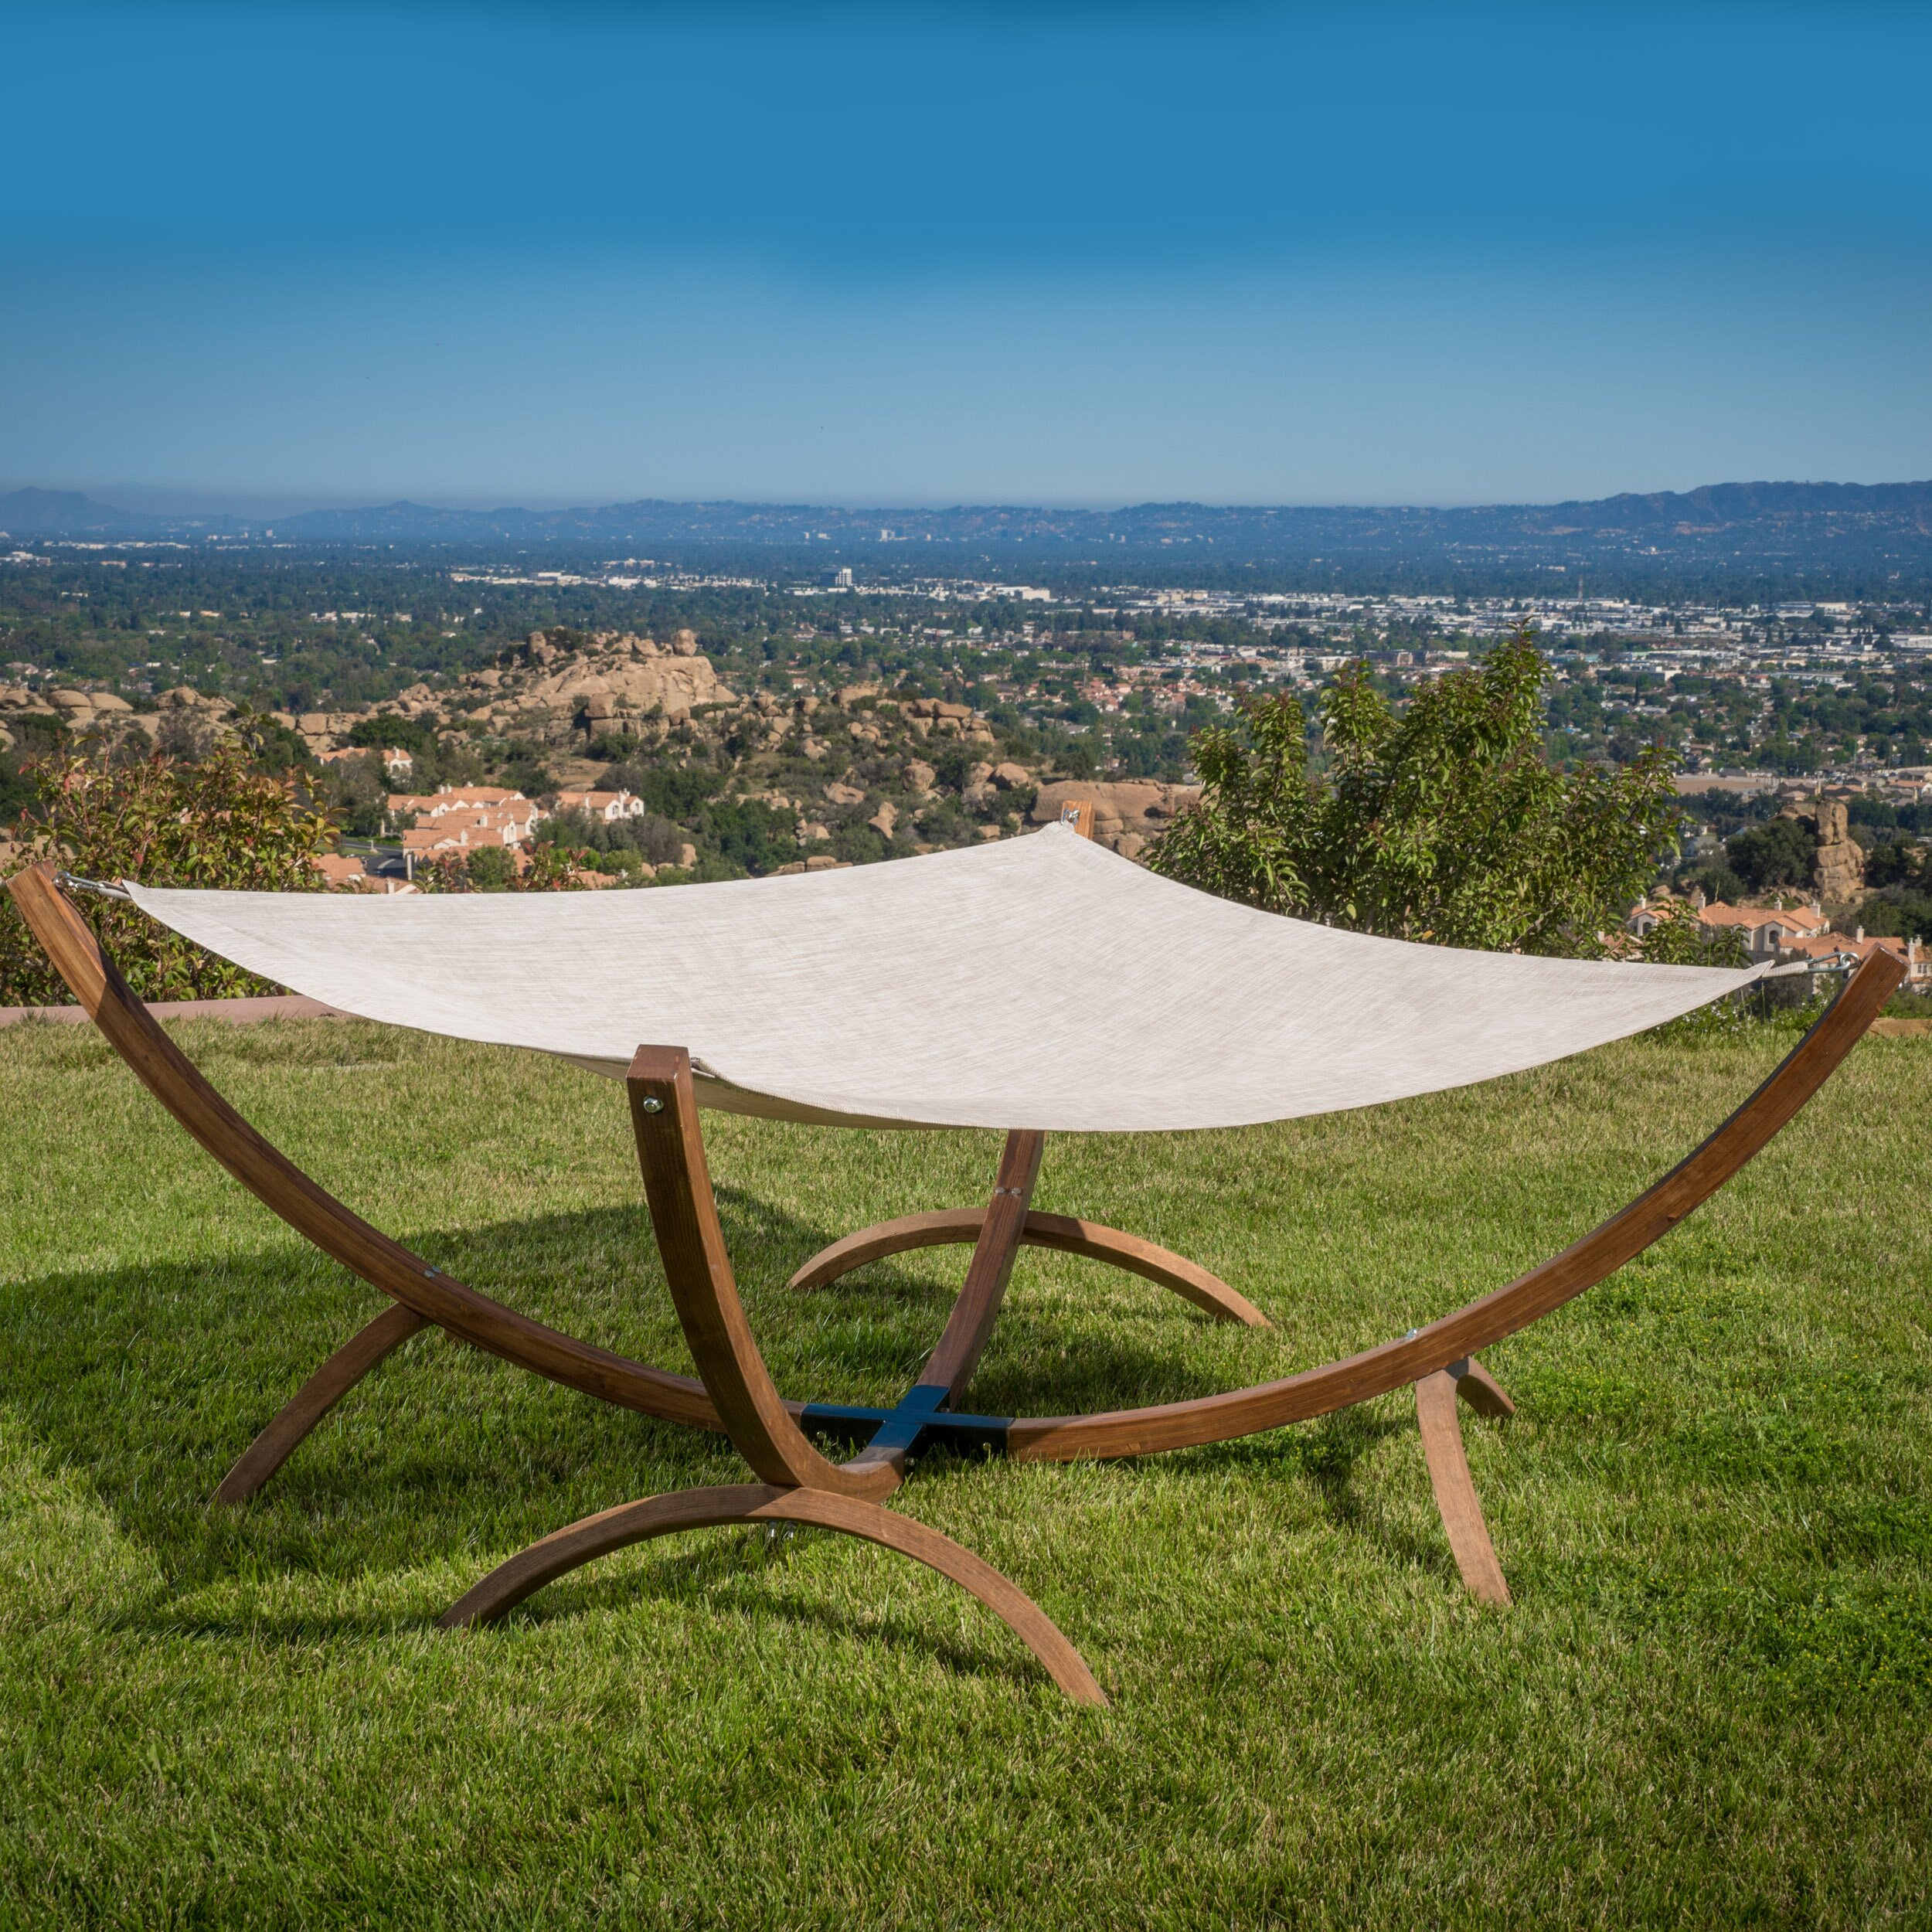 Backyard Hammock Reviews : Outdoor Patio Furniture  Hammocks with Stands Home Loft Concepts